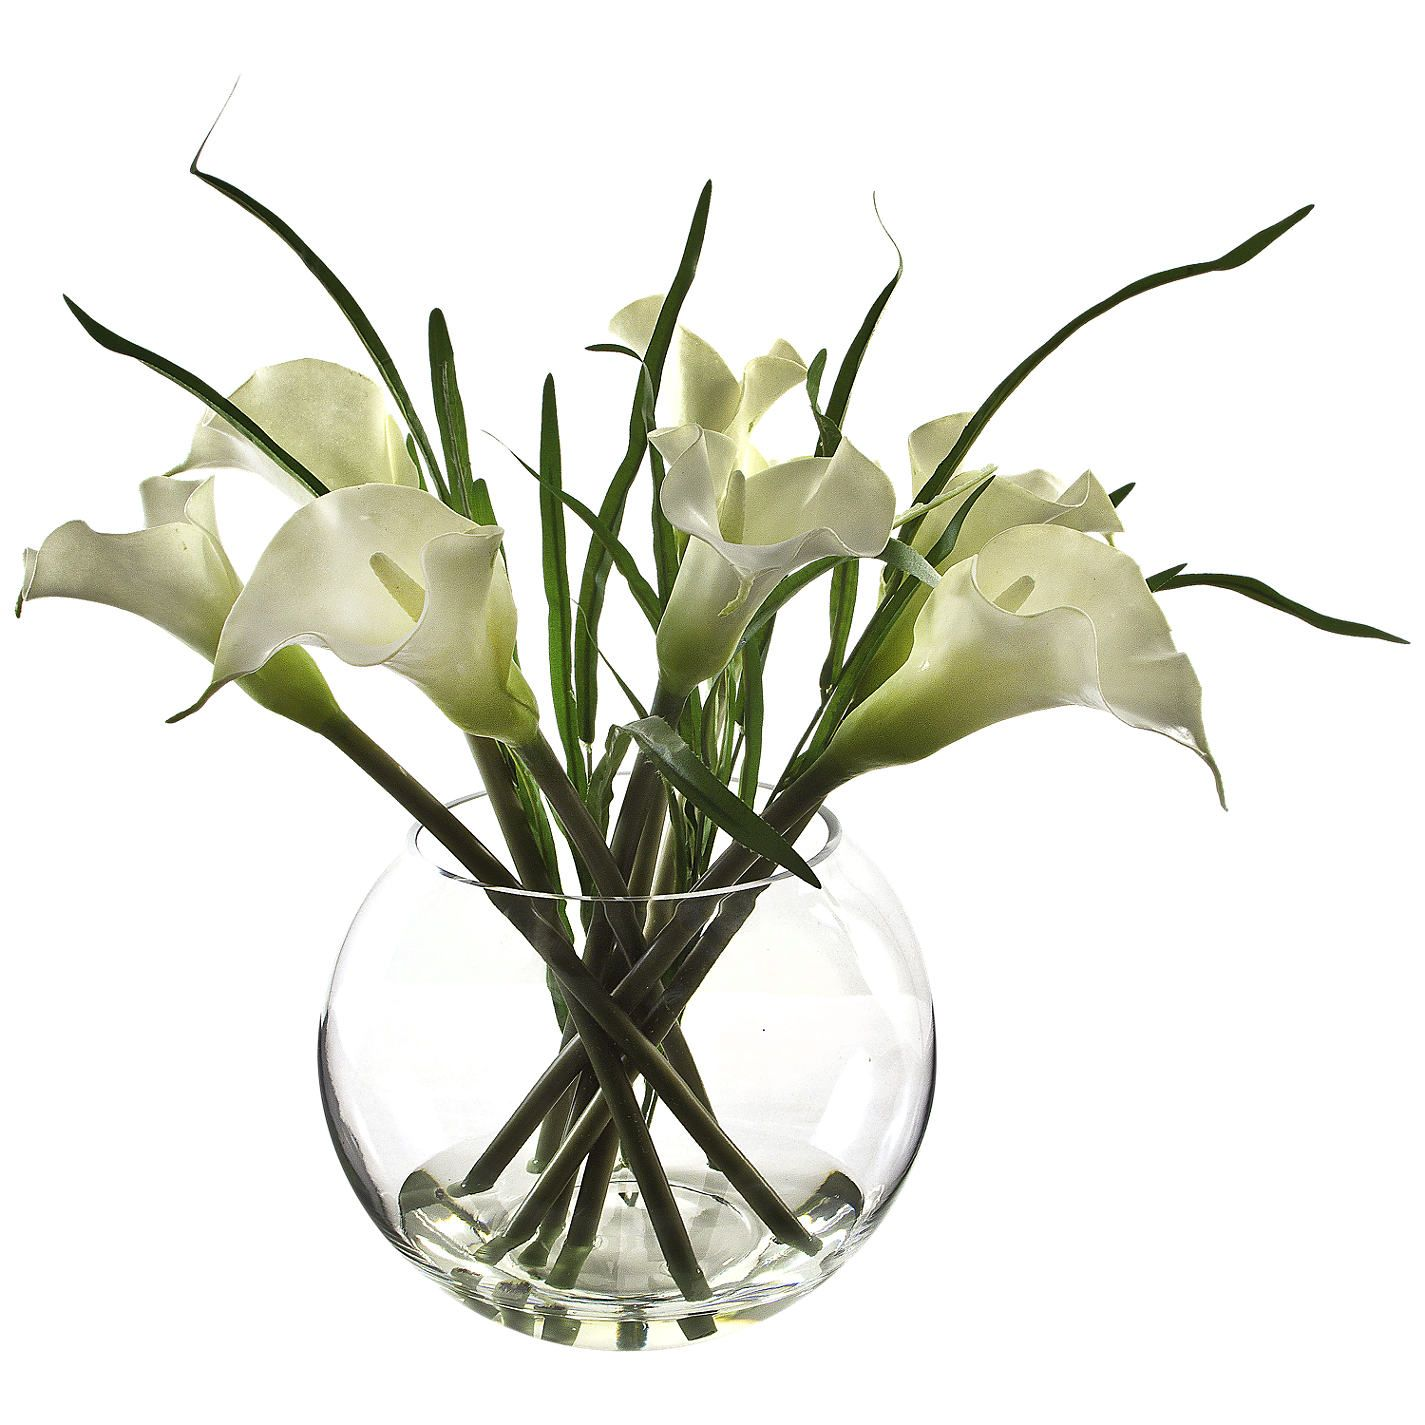 Peony Arum Lilies And Bear Grass In Glass Bowl White Flowers